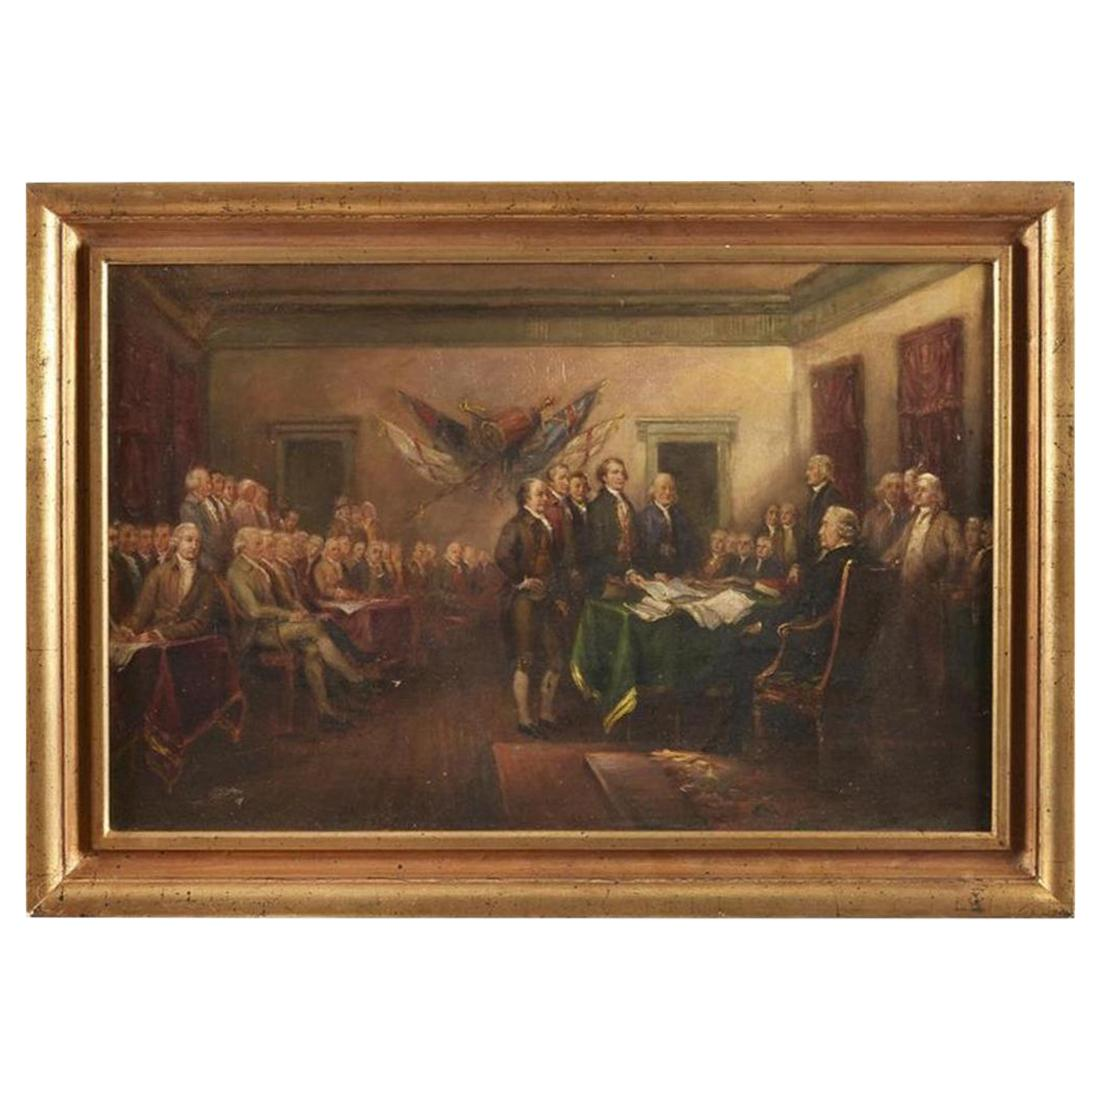 Declaration of Independence Oil on Canvas by Horace Carpenter, John Trumbull